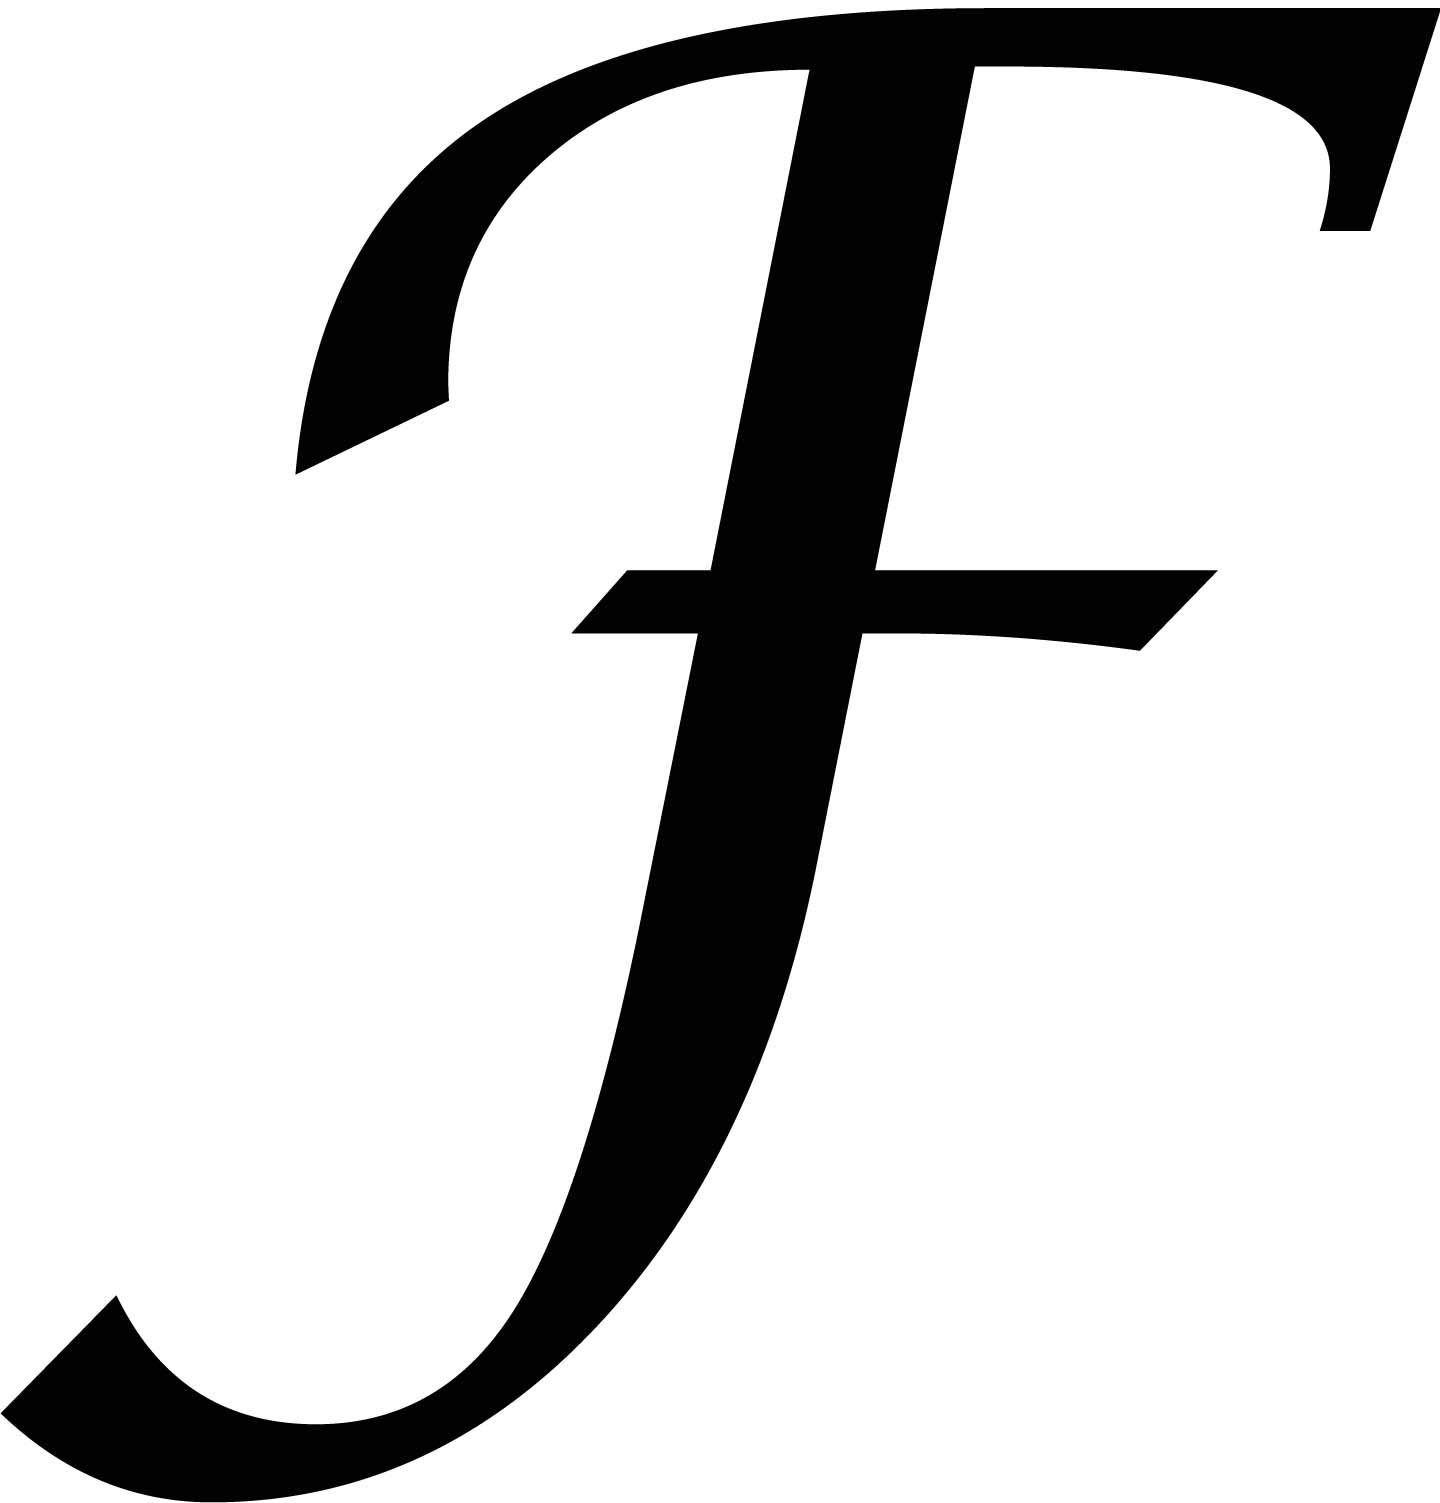 F Created A Letter F Template And Printed It Out If You Want One For